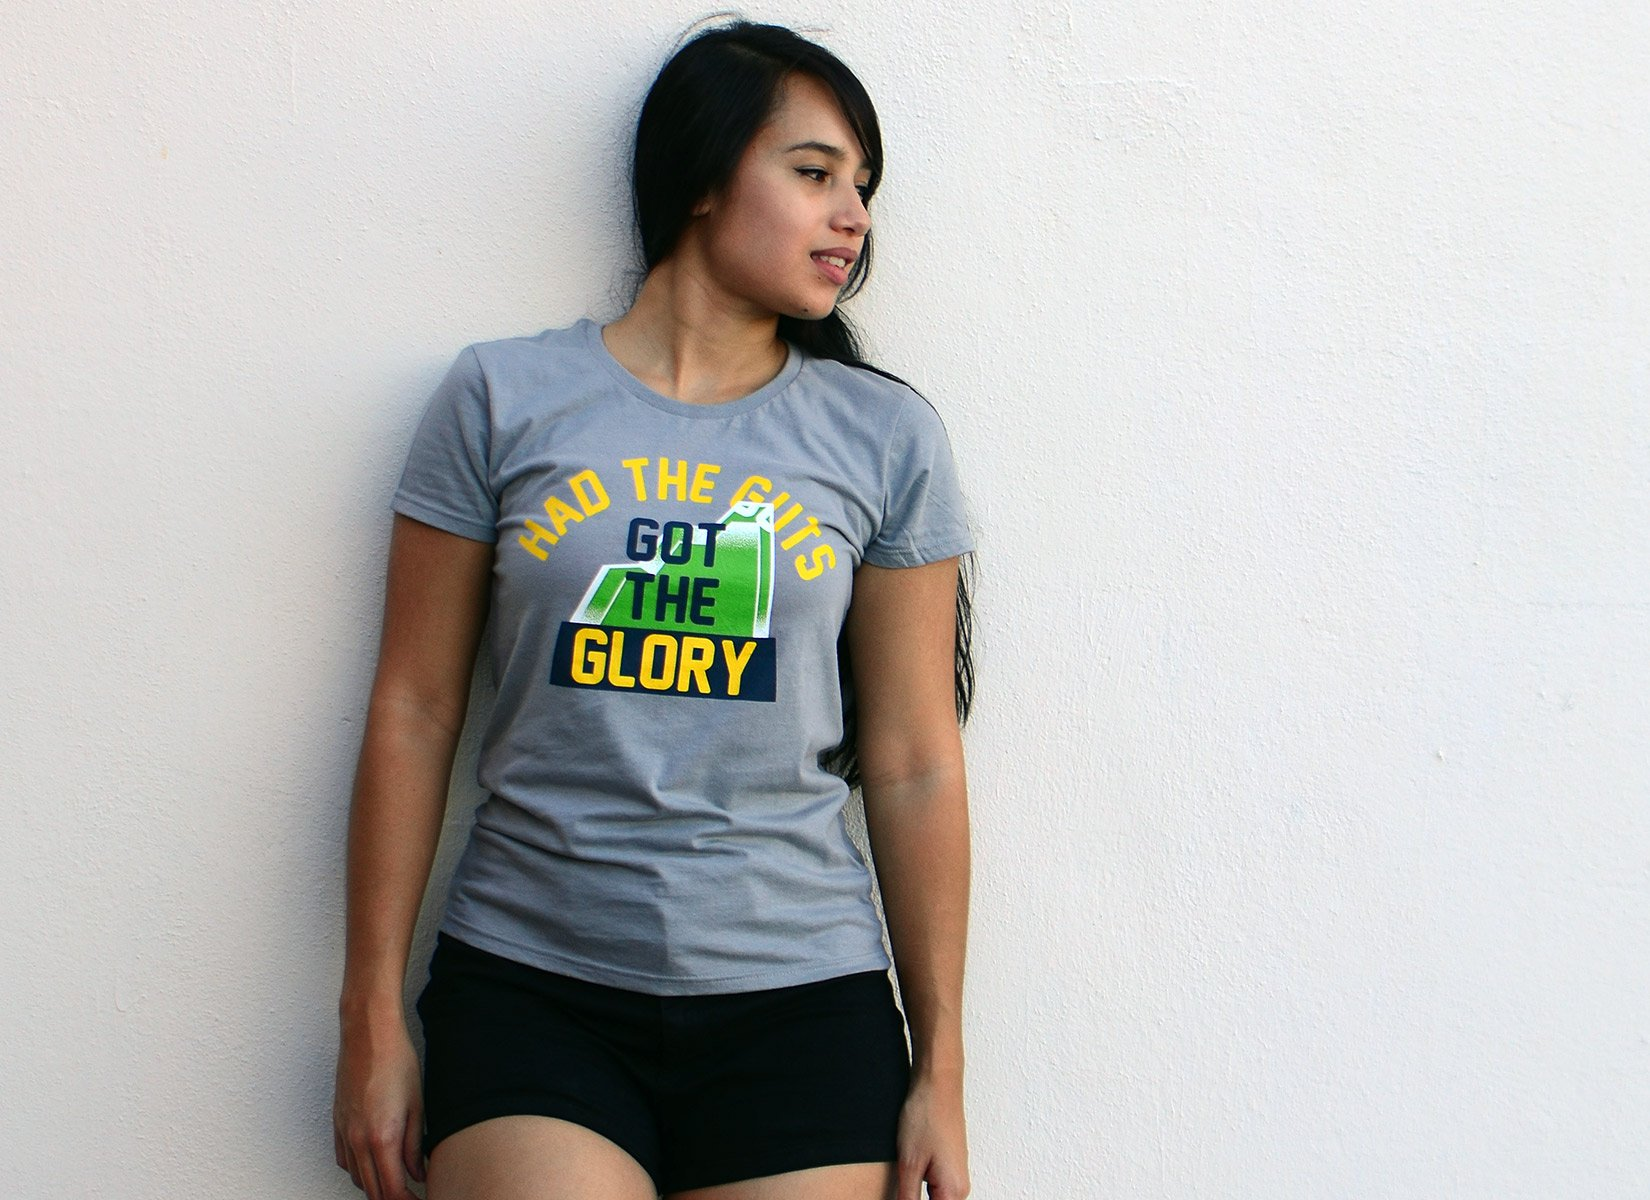 Had The Guts, Got The Glory on Womens T-Shirt